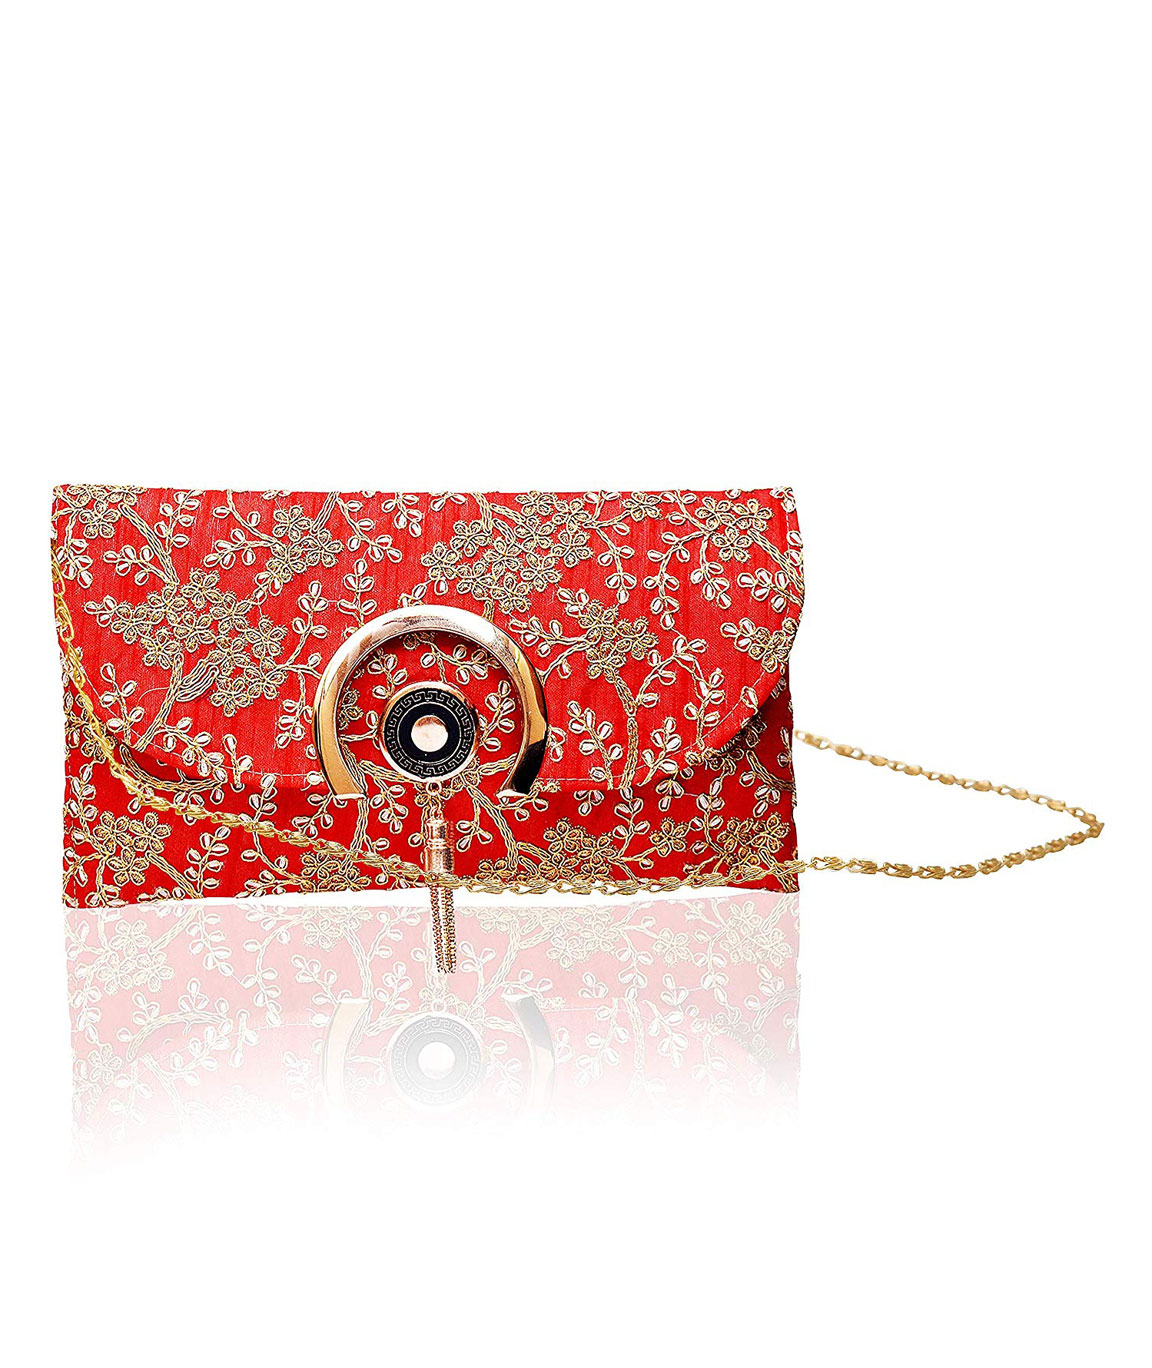 DN Enterprises Attractive Stylish Specially Heavy Embroidery Designed Sling Bag/Handbags for Girls & Womens(red)